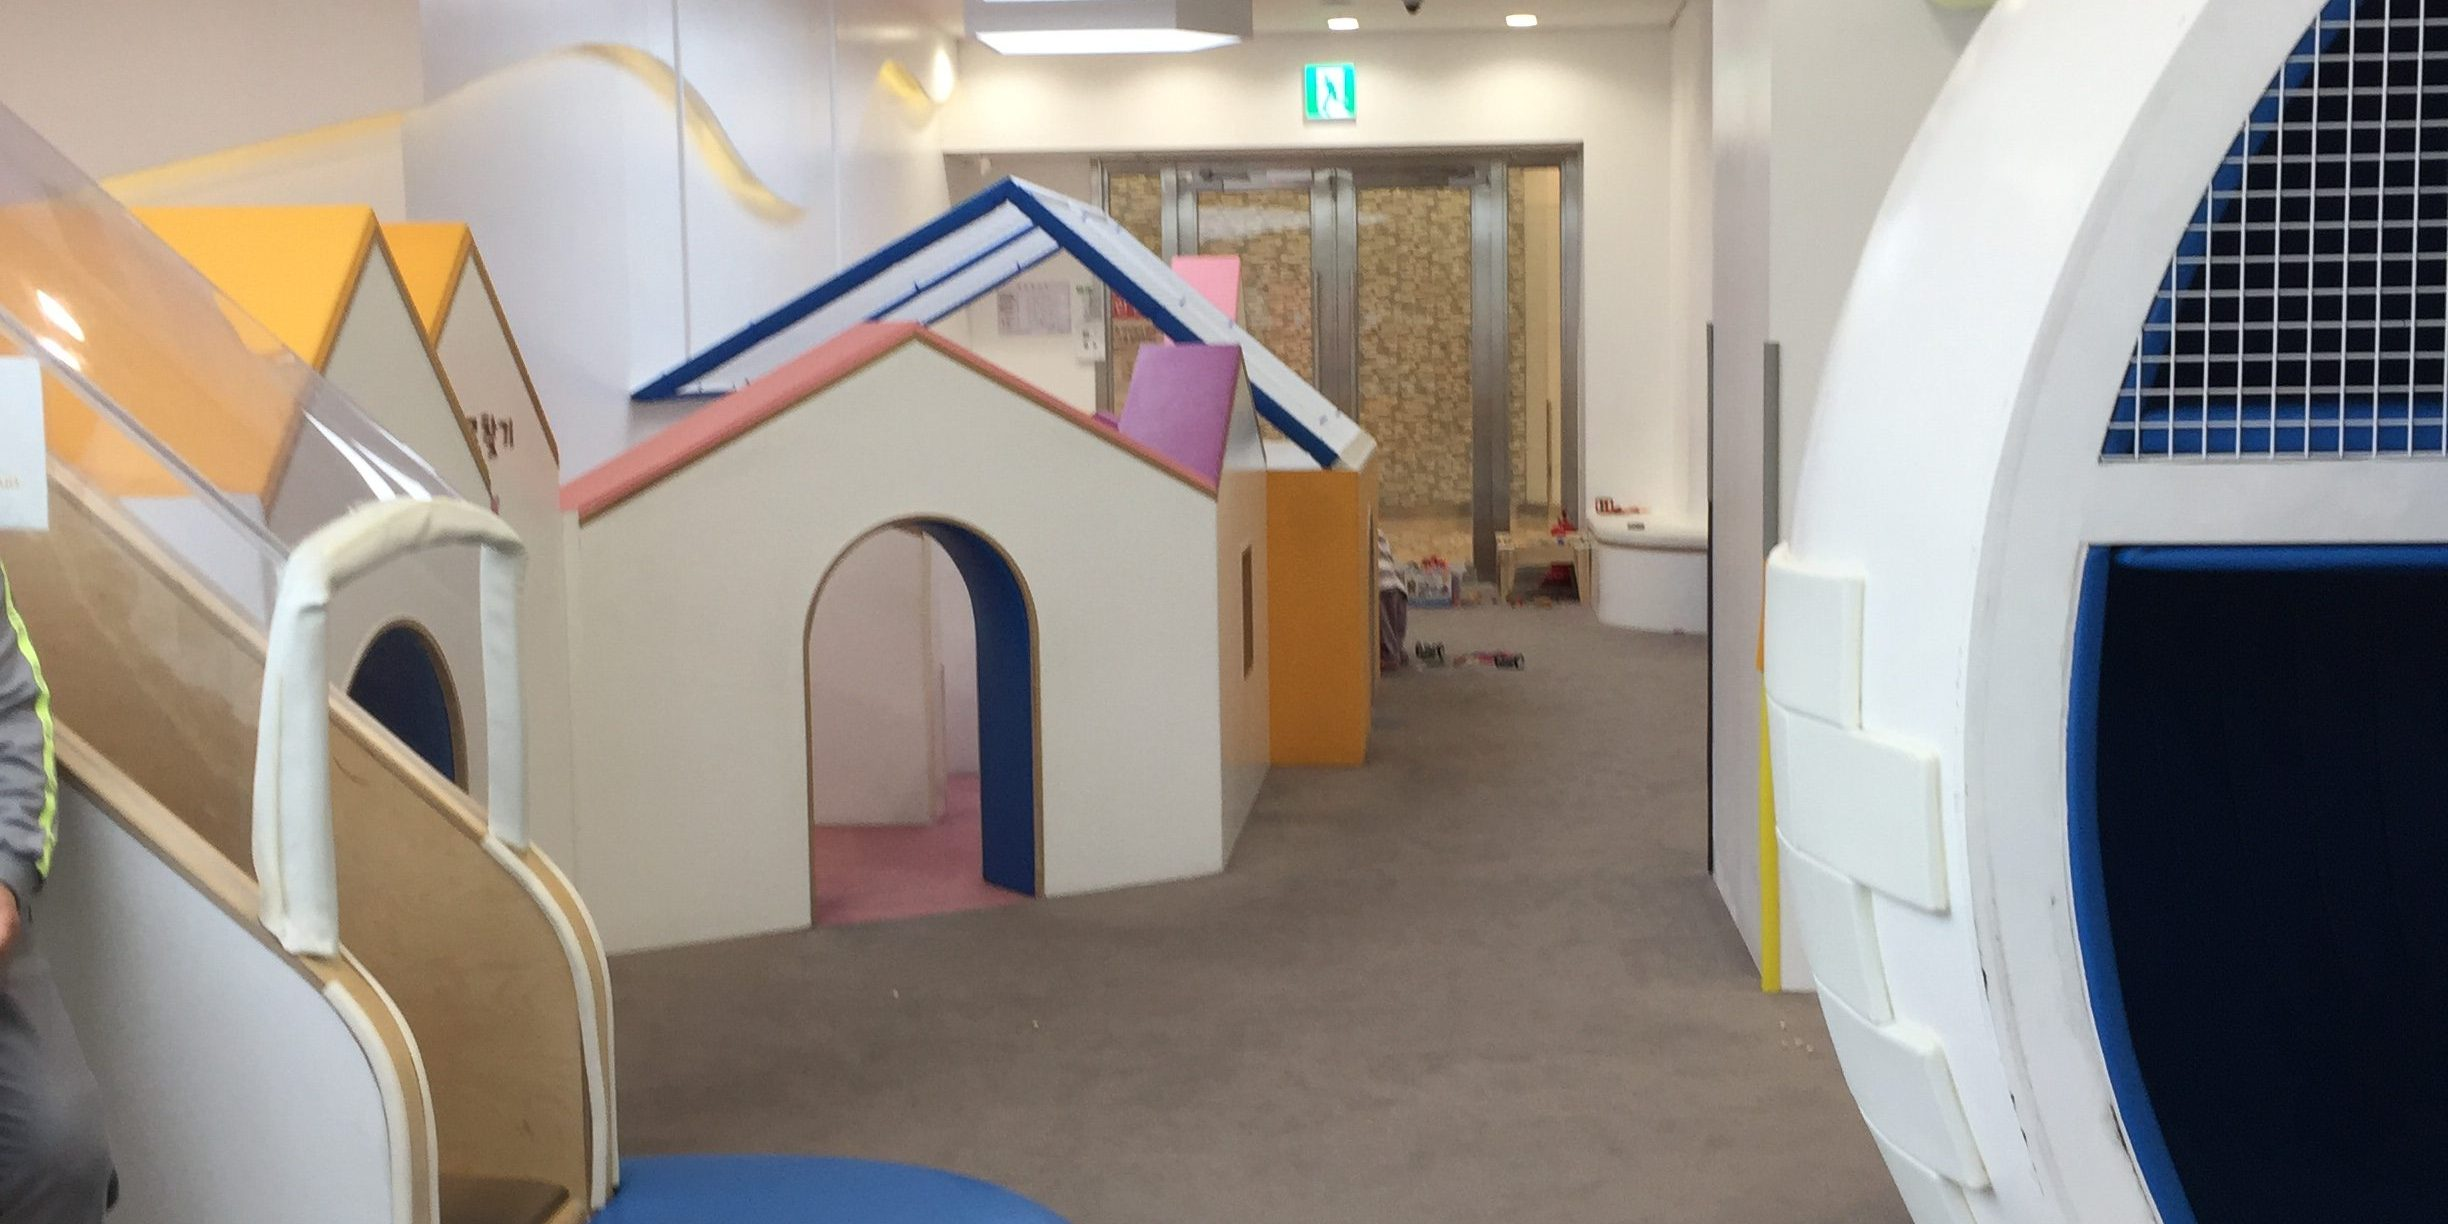 A slide and maze section at Pororo Lounge